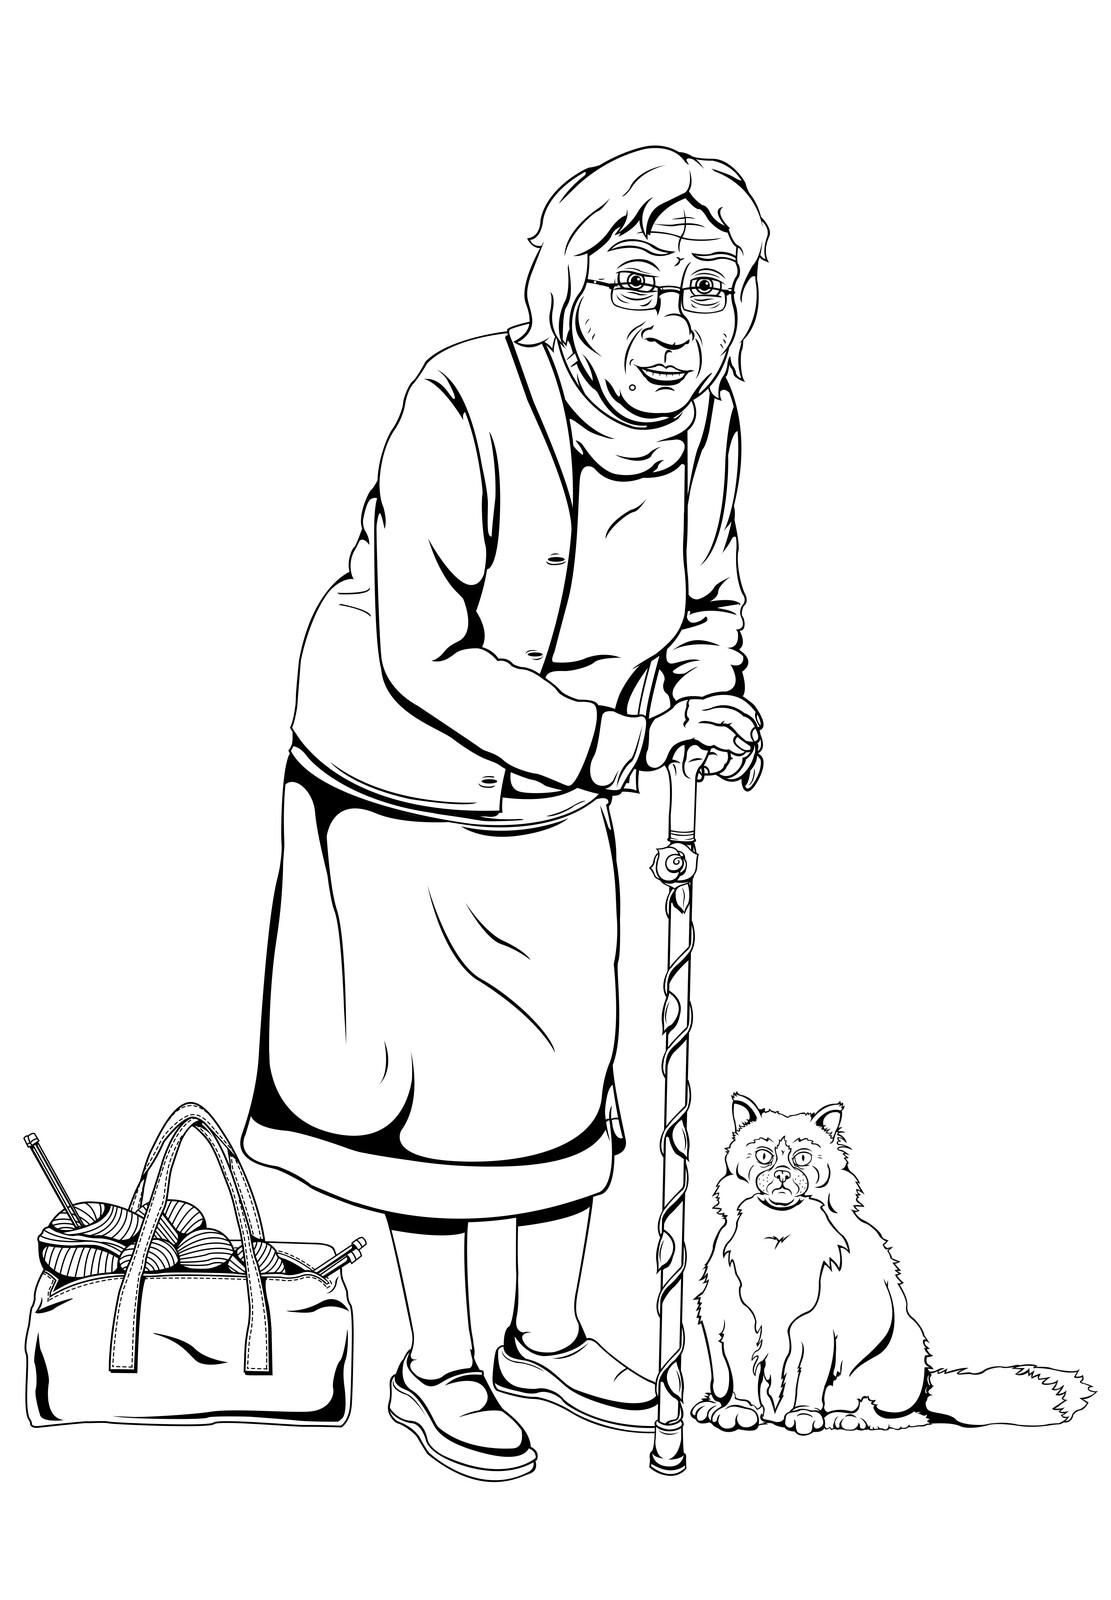 Early development art for a sweet old lady who aids Tracey on his journey through limbo.